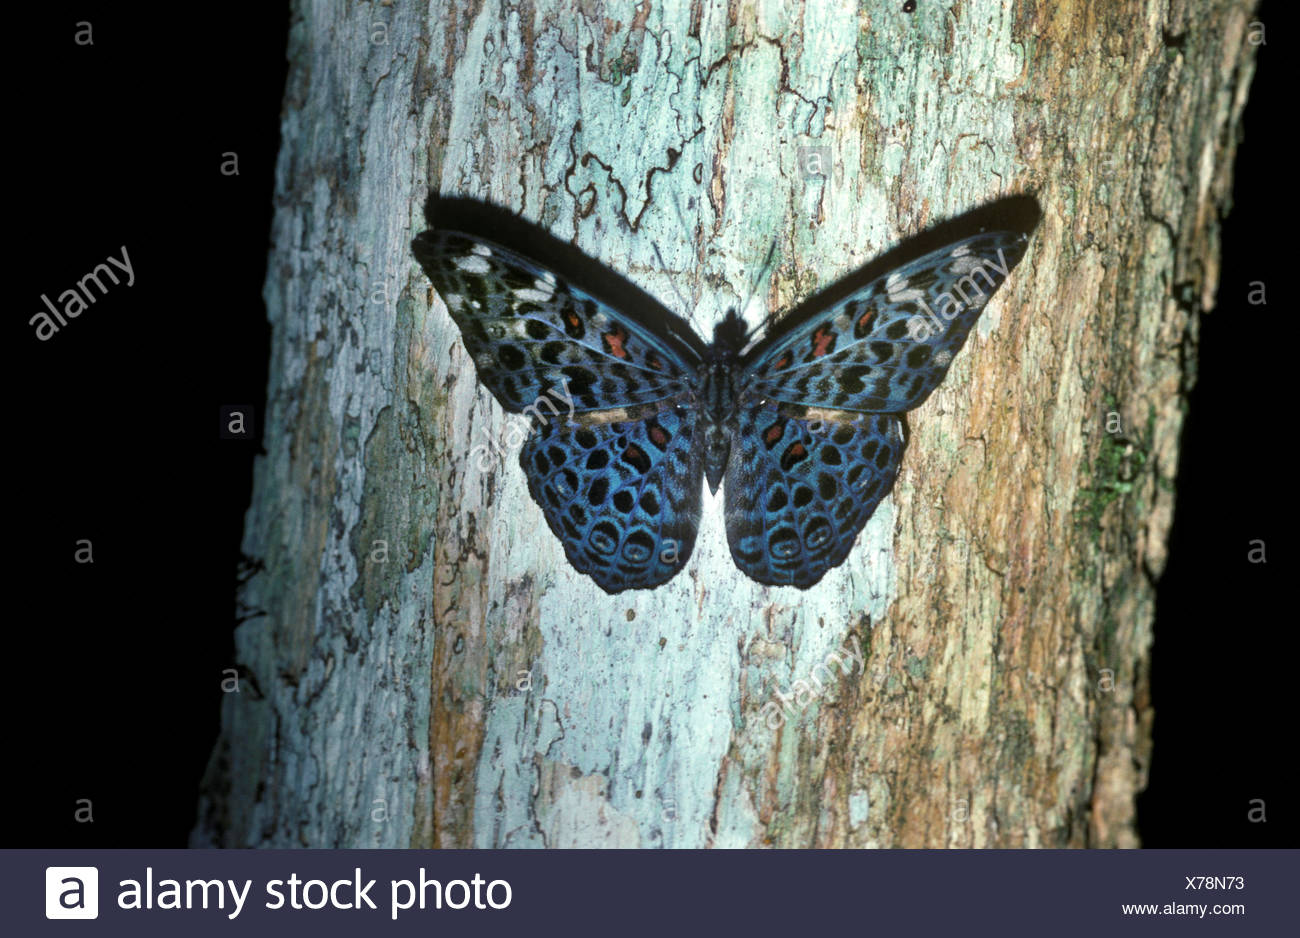 Cracker Butterfly, on tree trunk in rainforest, Belize, Neotropical group of medium-sized brush-footed butterfly species of the genus Hamadryas, Male  - Stock Image